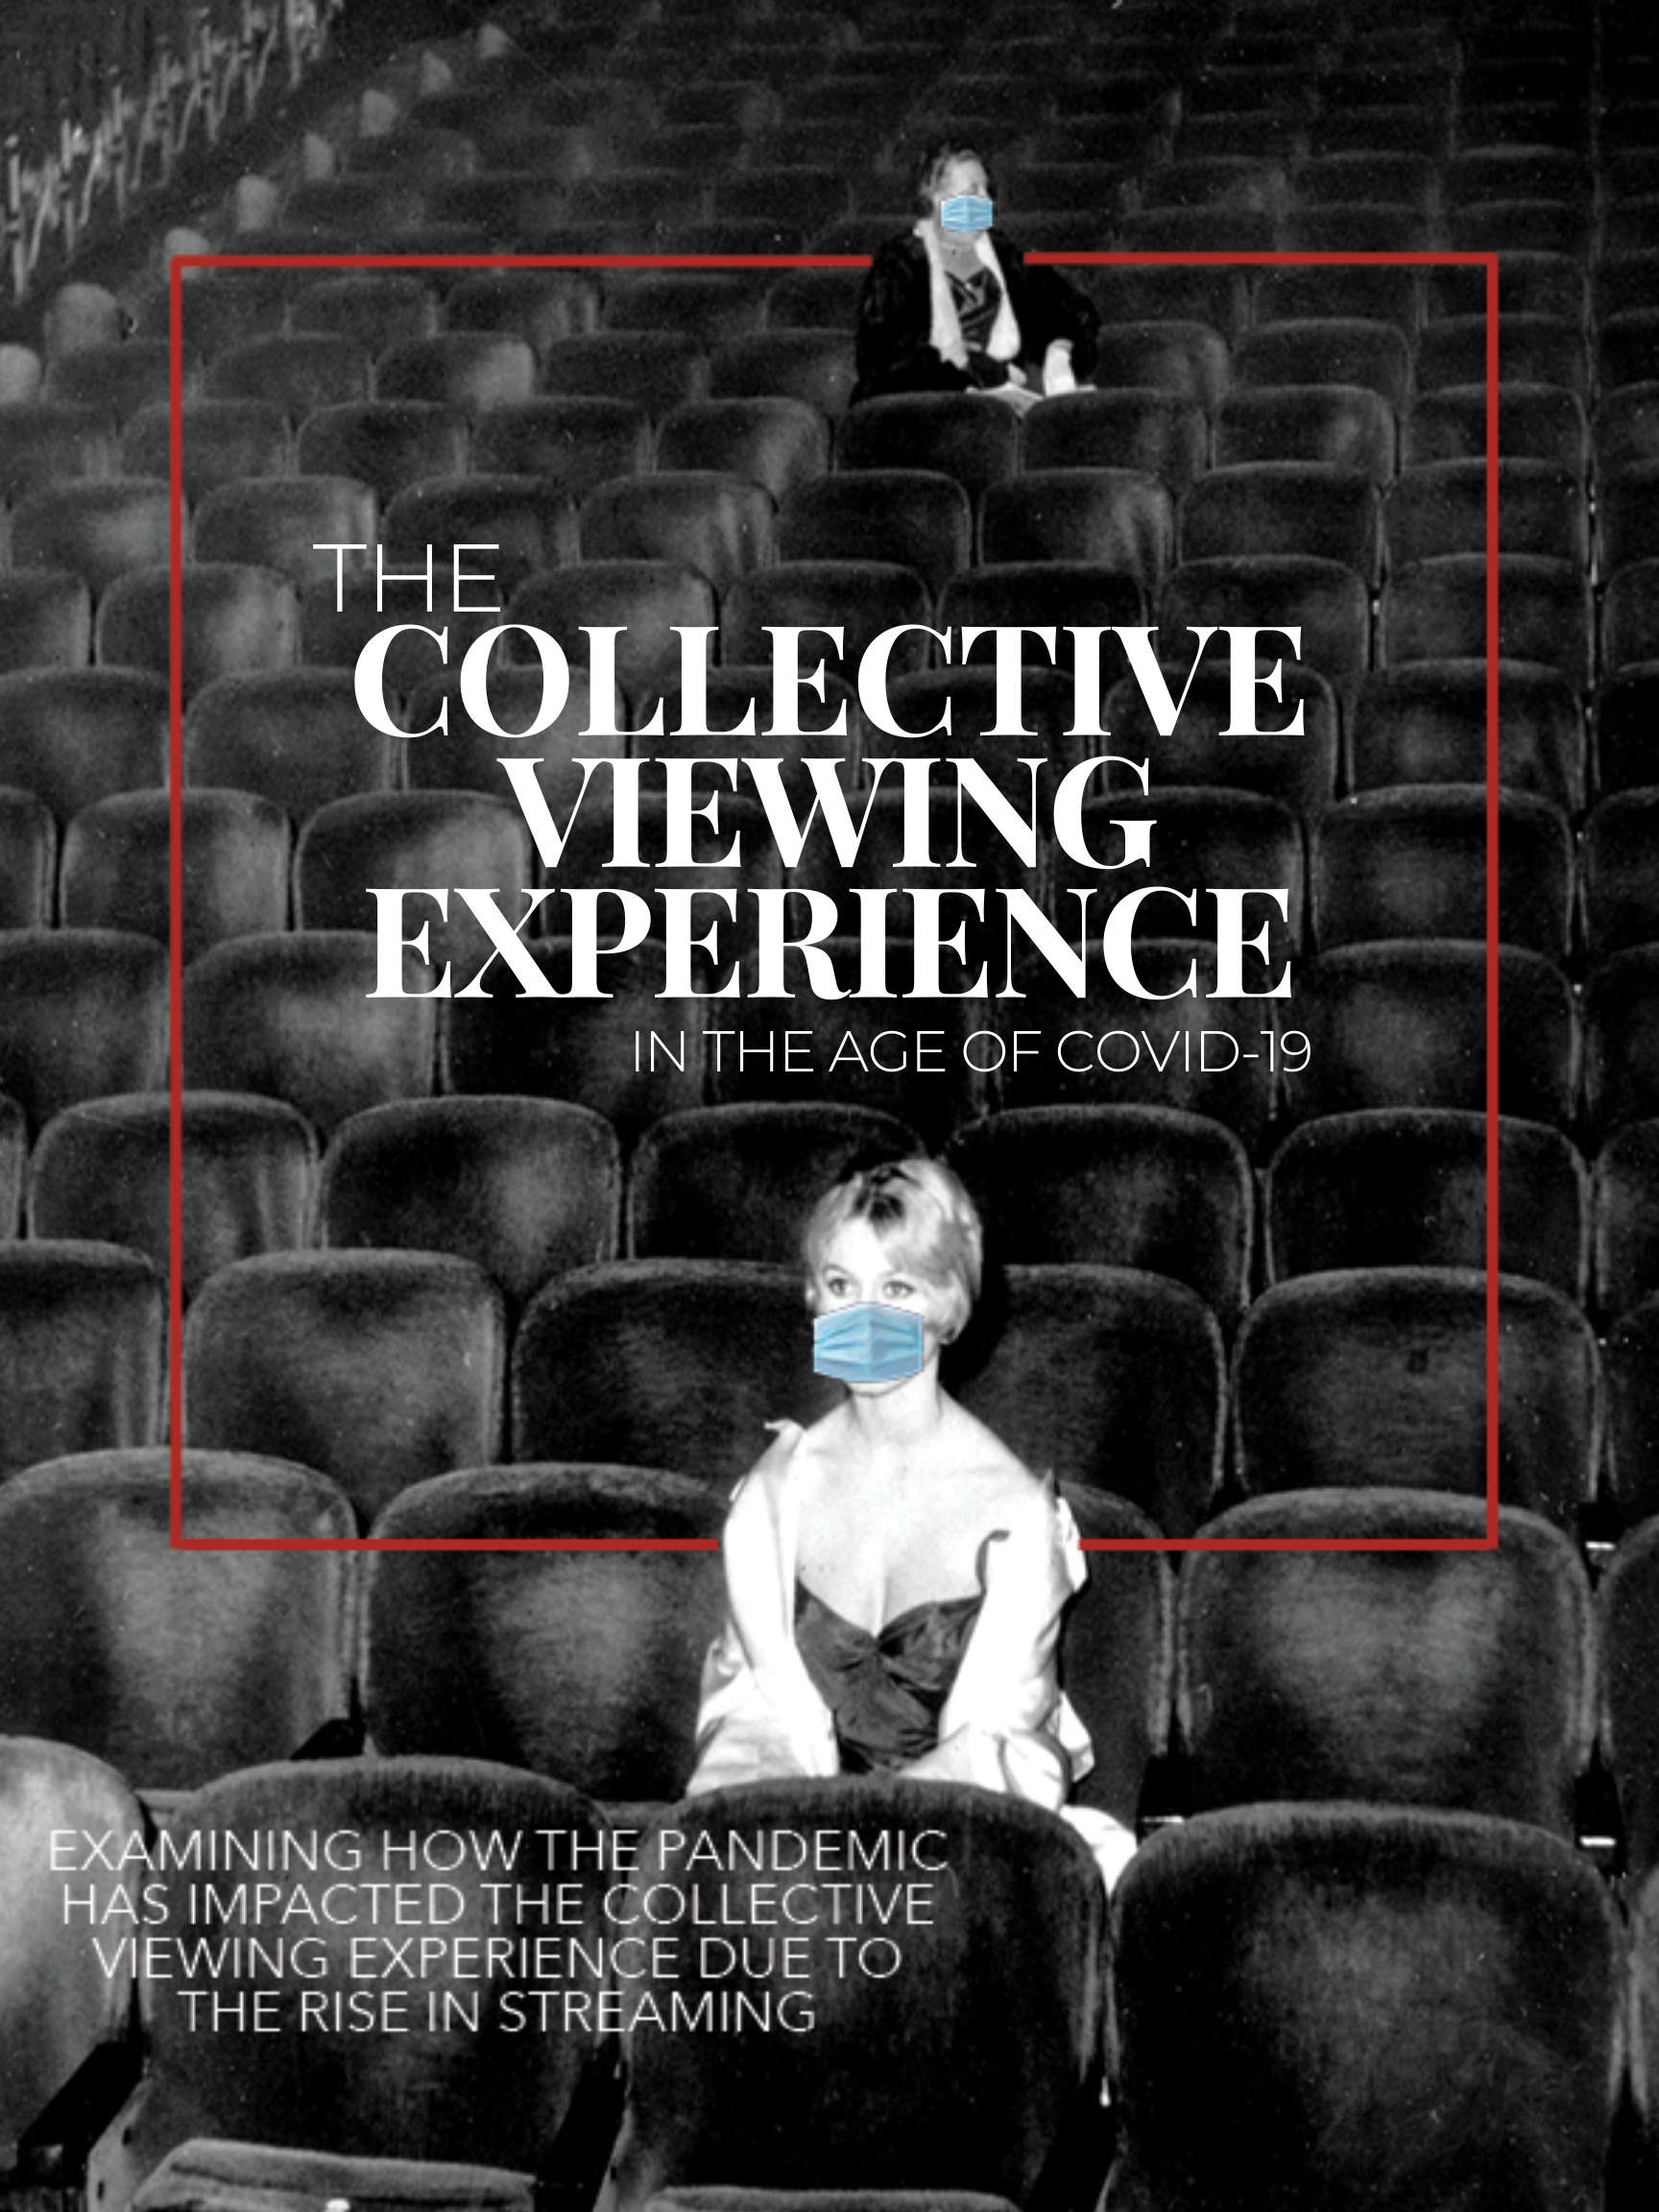 The Collective Viewing Experience in the Age of COVID-19